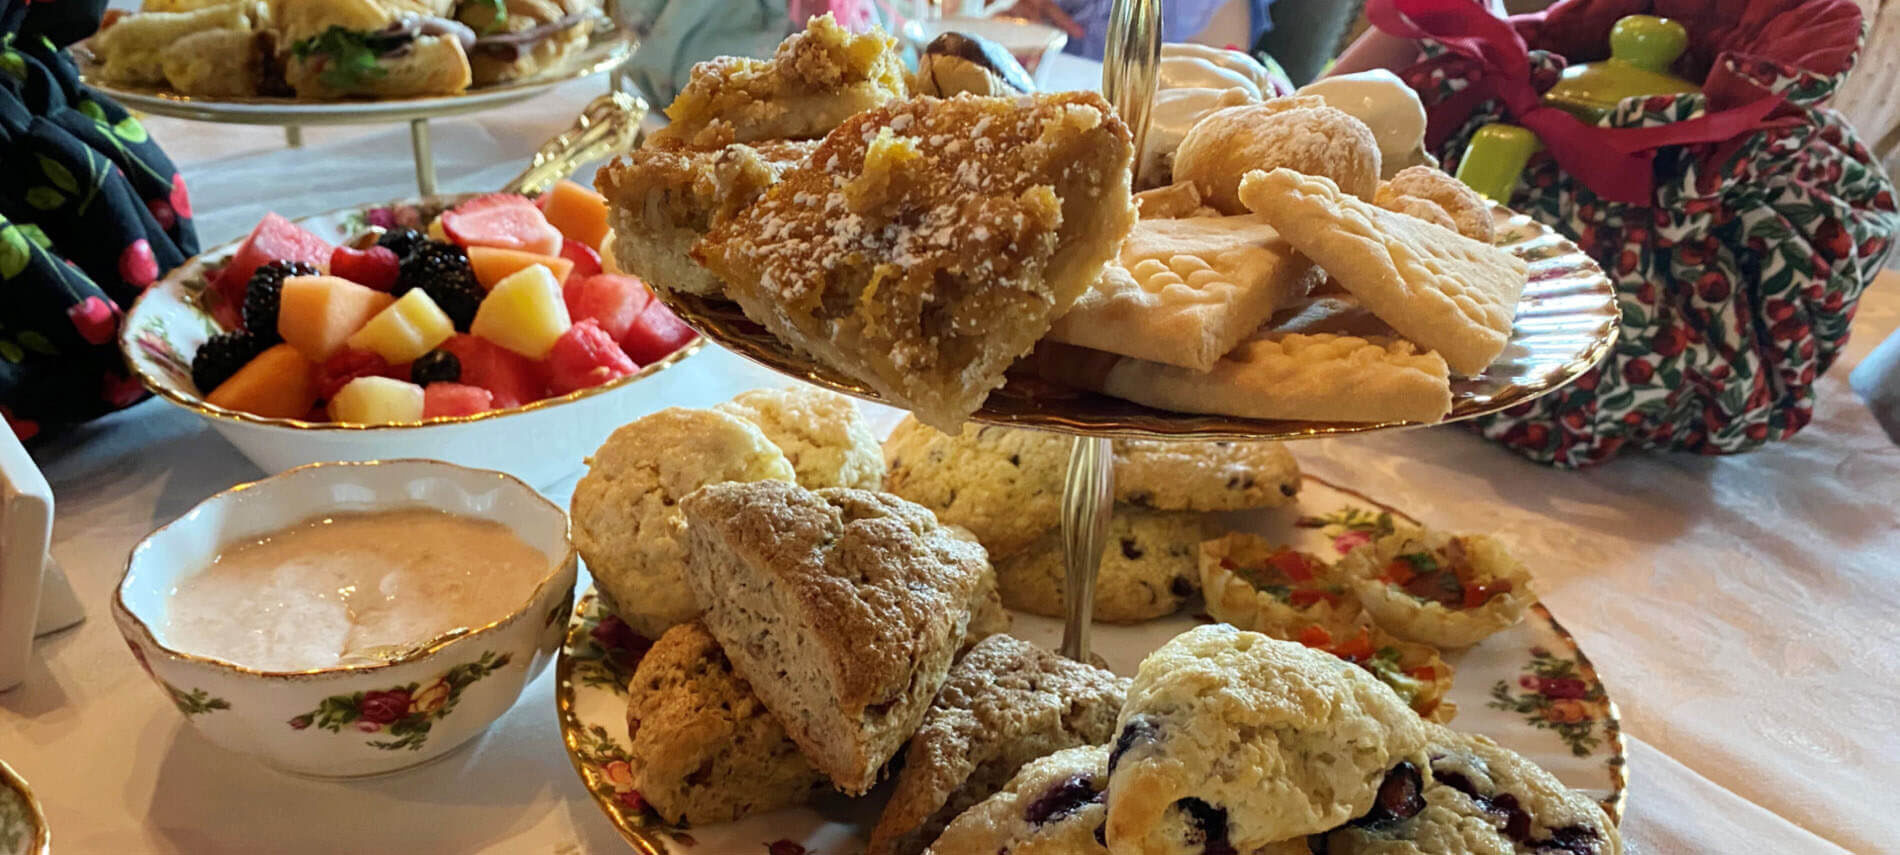 teatime sandwiches, scones, cookies, and teapots